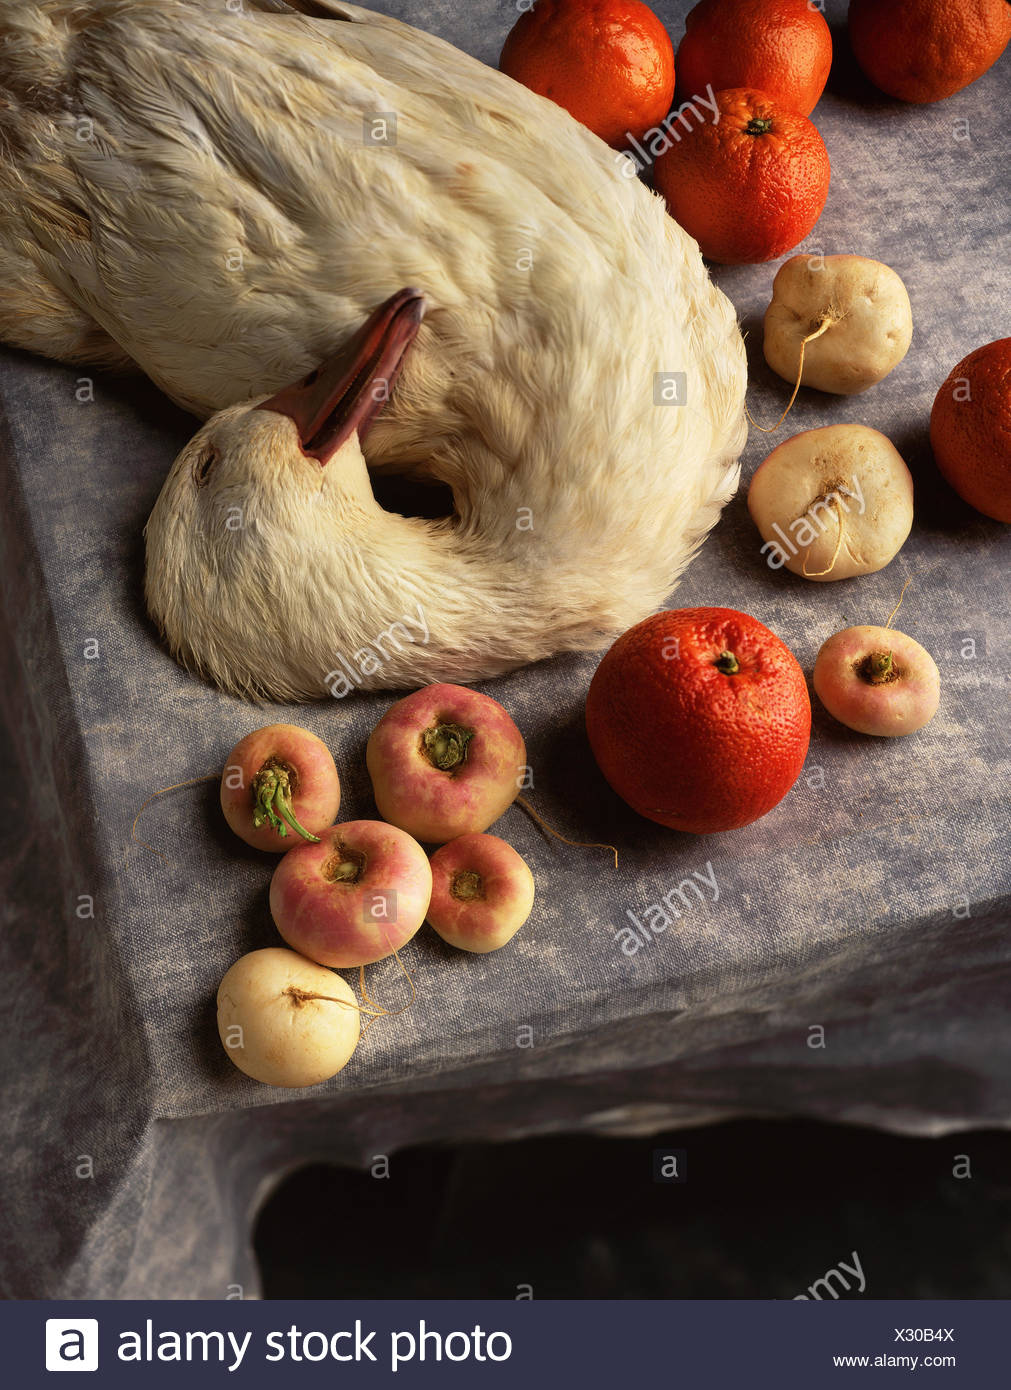 Still life of aylesbury duck, blood oranges and turnips - Stock Image